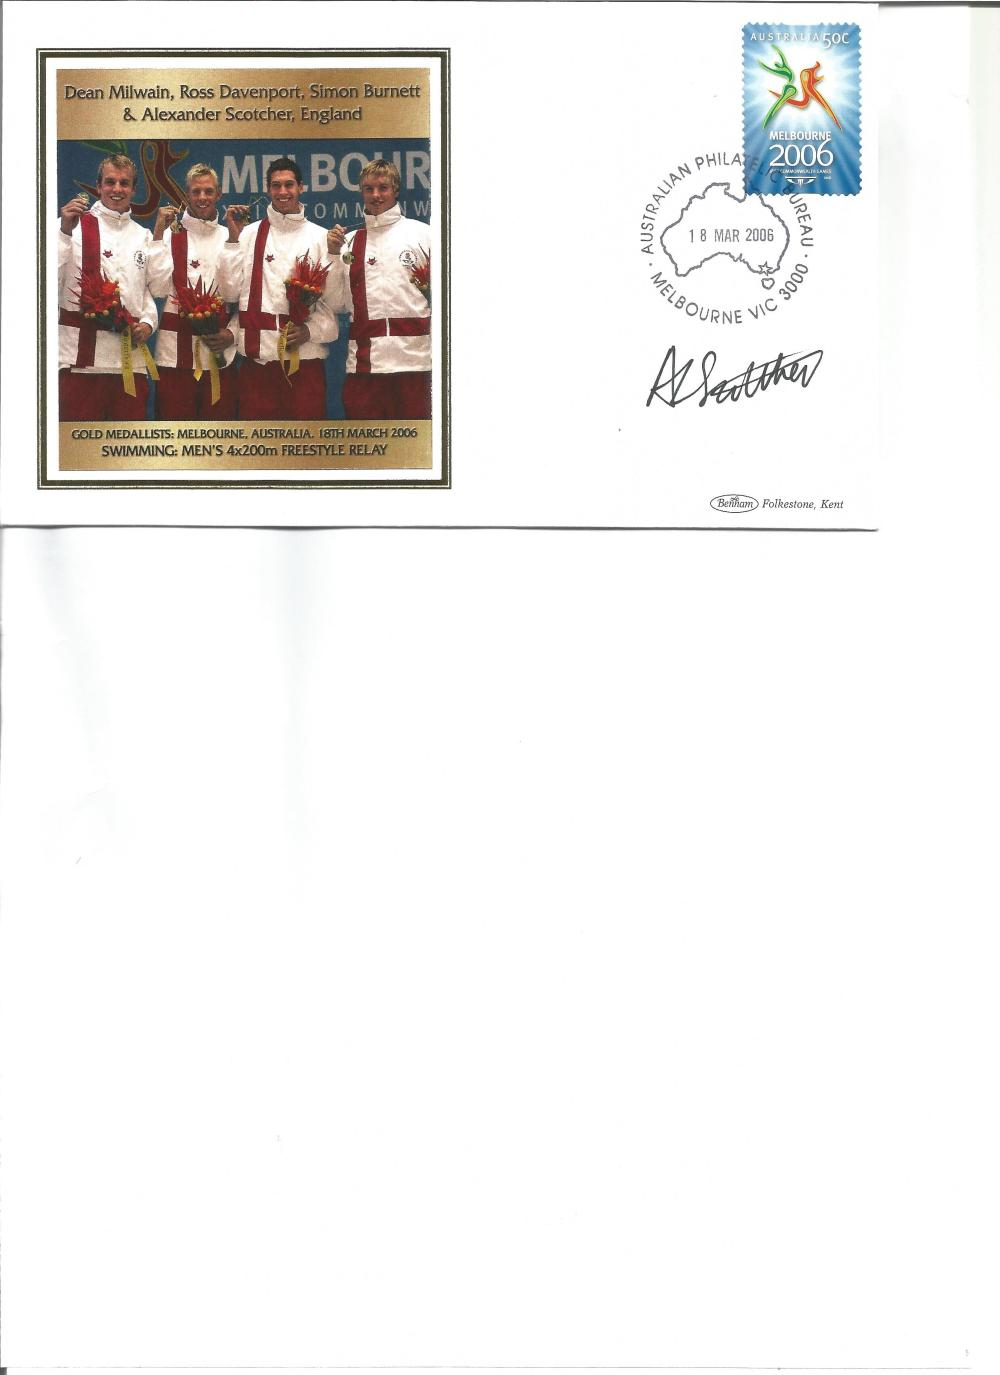 Alexander Scotcher signed 2006 Australian Commonwealth Games FDC. Swimming gold medallist. Good